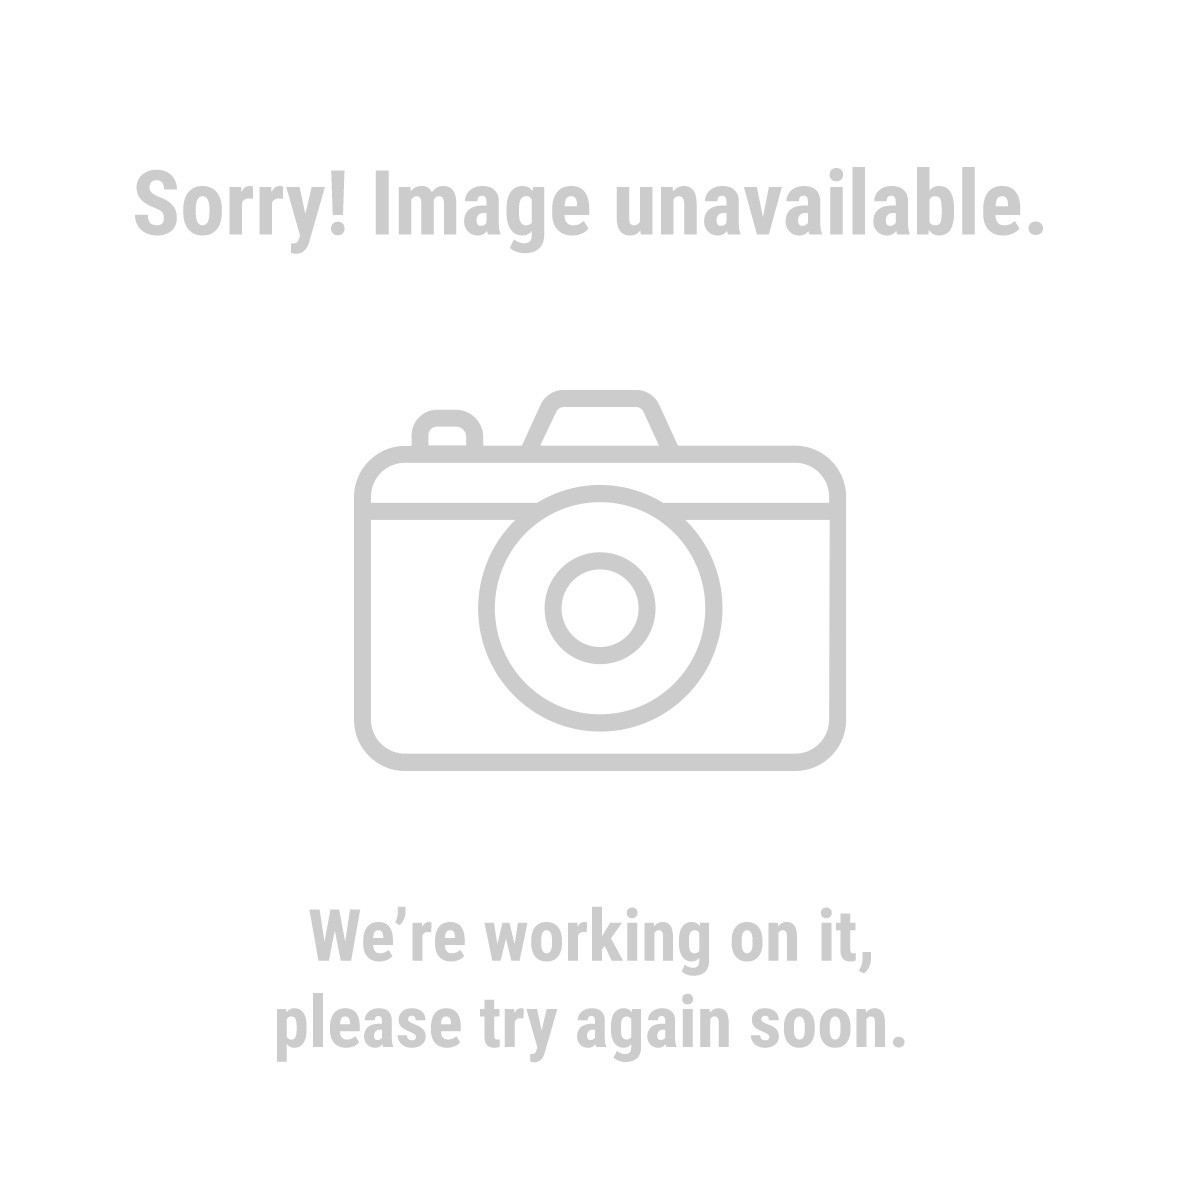 Chicago Electric Power Tools 98199 10 in. Sliding Compound Miter Saw